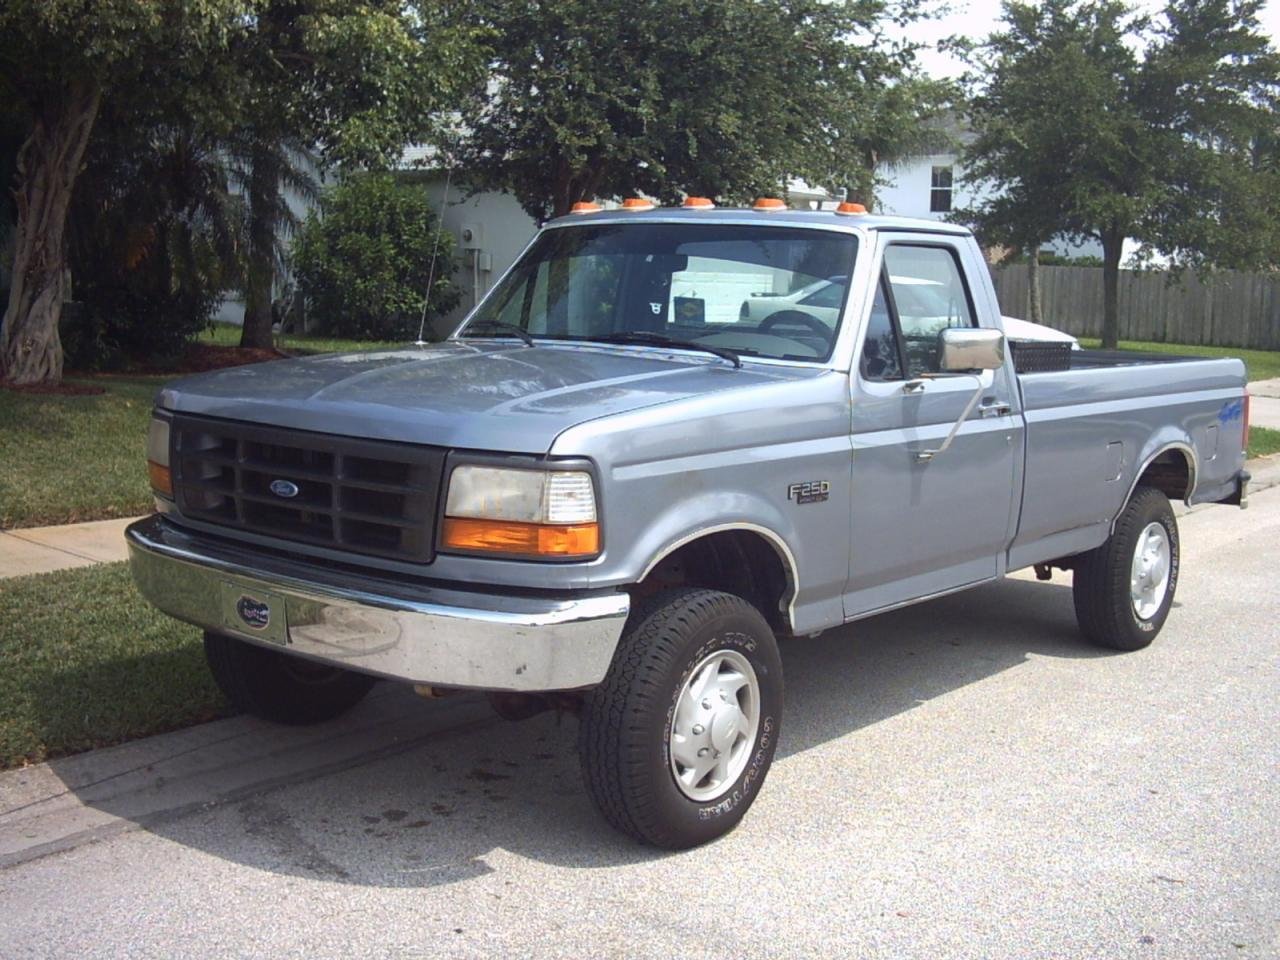 1995 ford f 250 information and photos zombiedrive. Black Bedroom Furniture Sets. Home Design Ideas